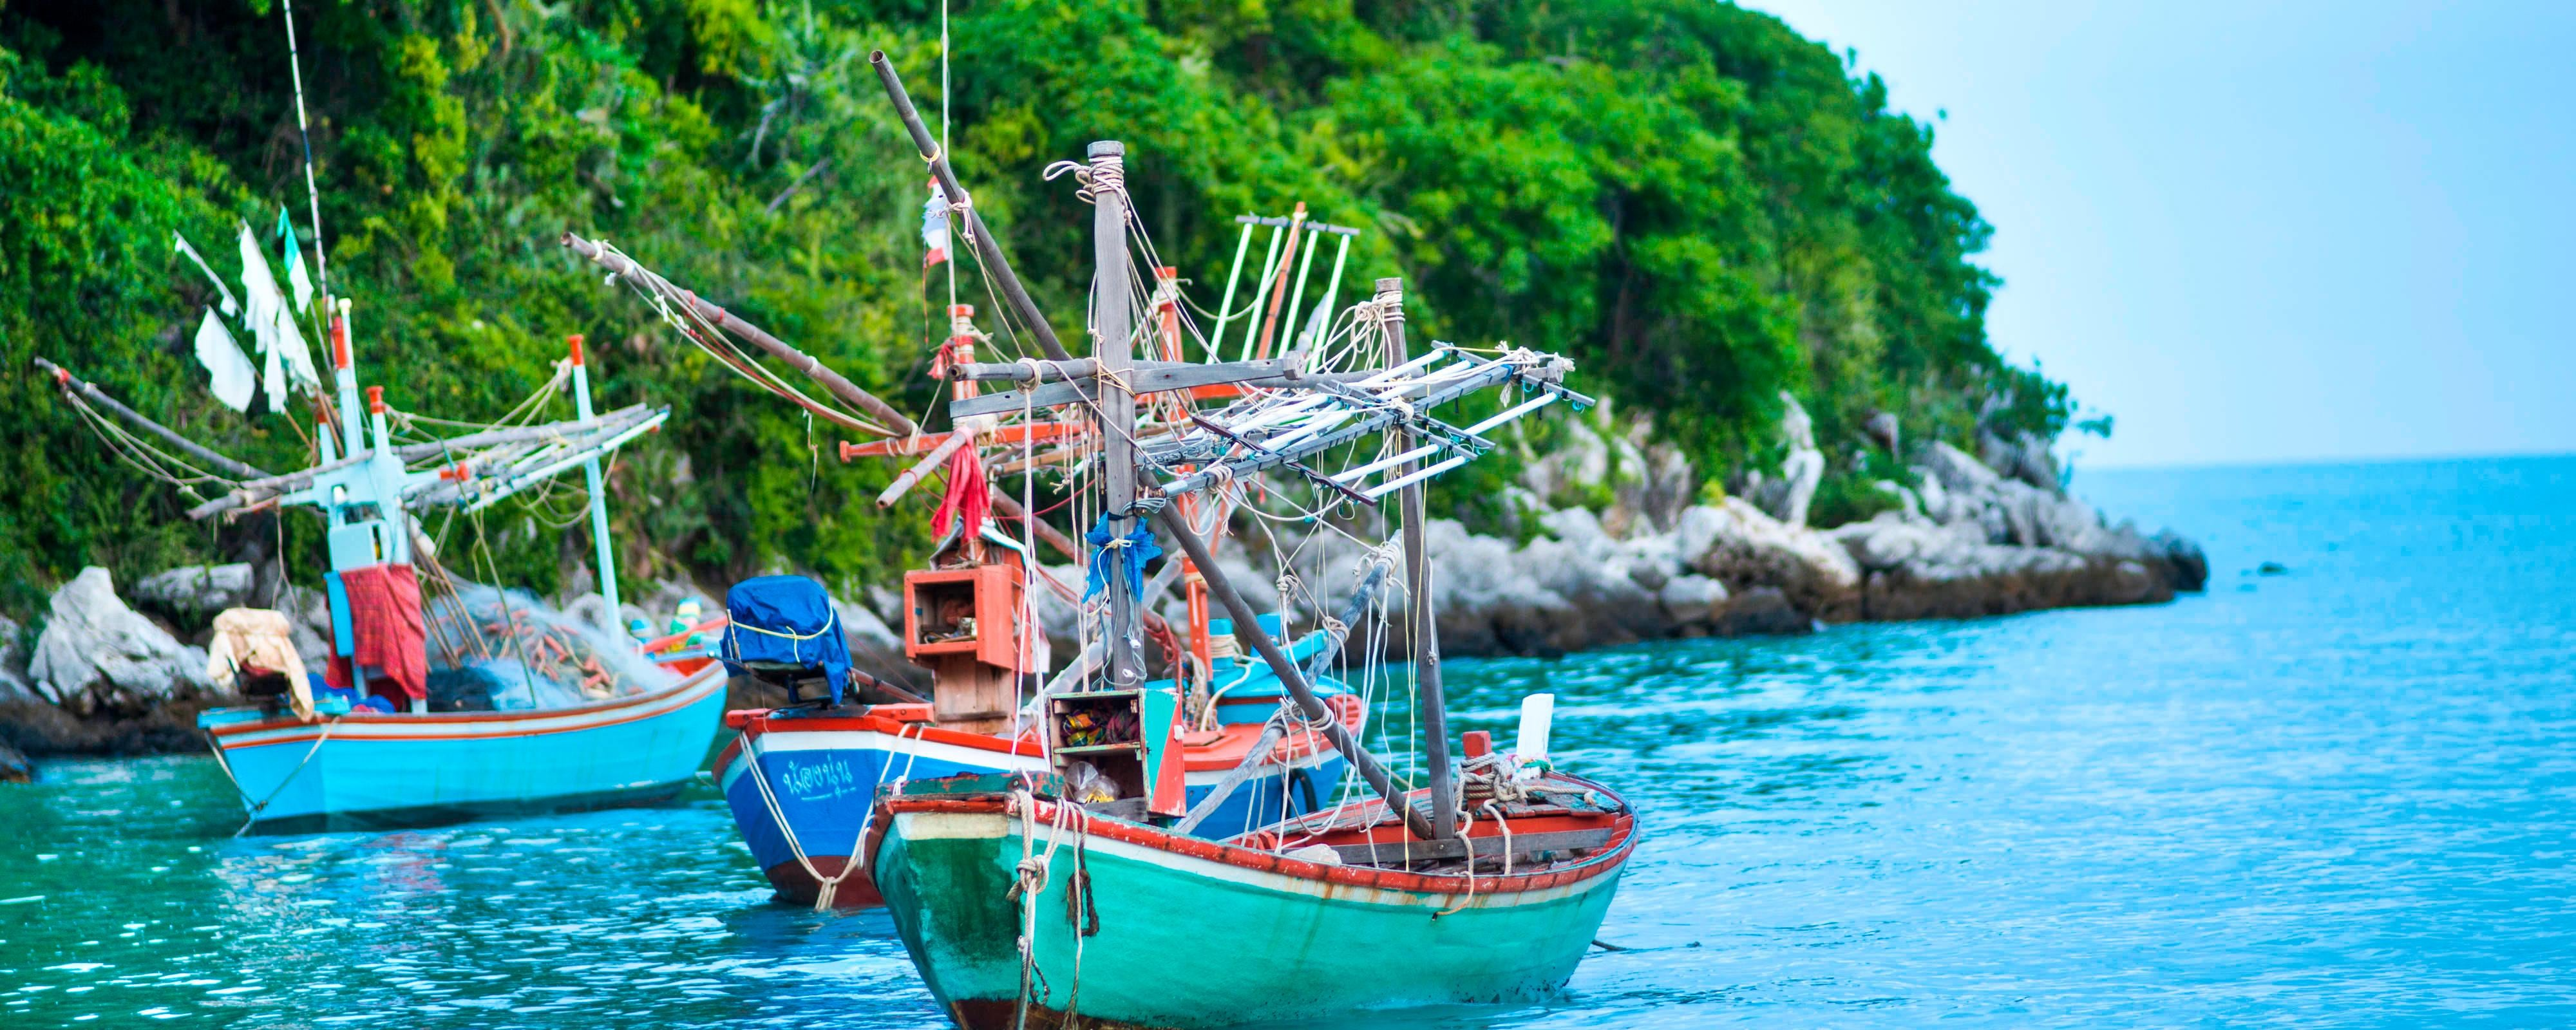 Local Living and Fishing Boats